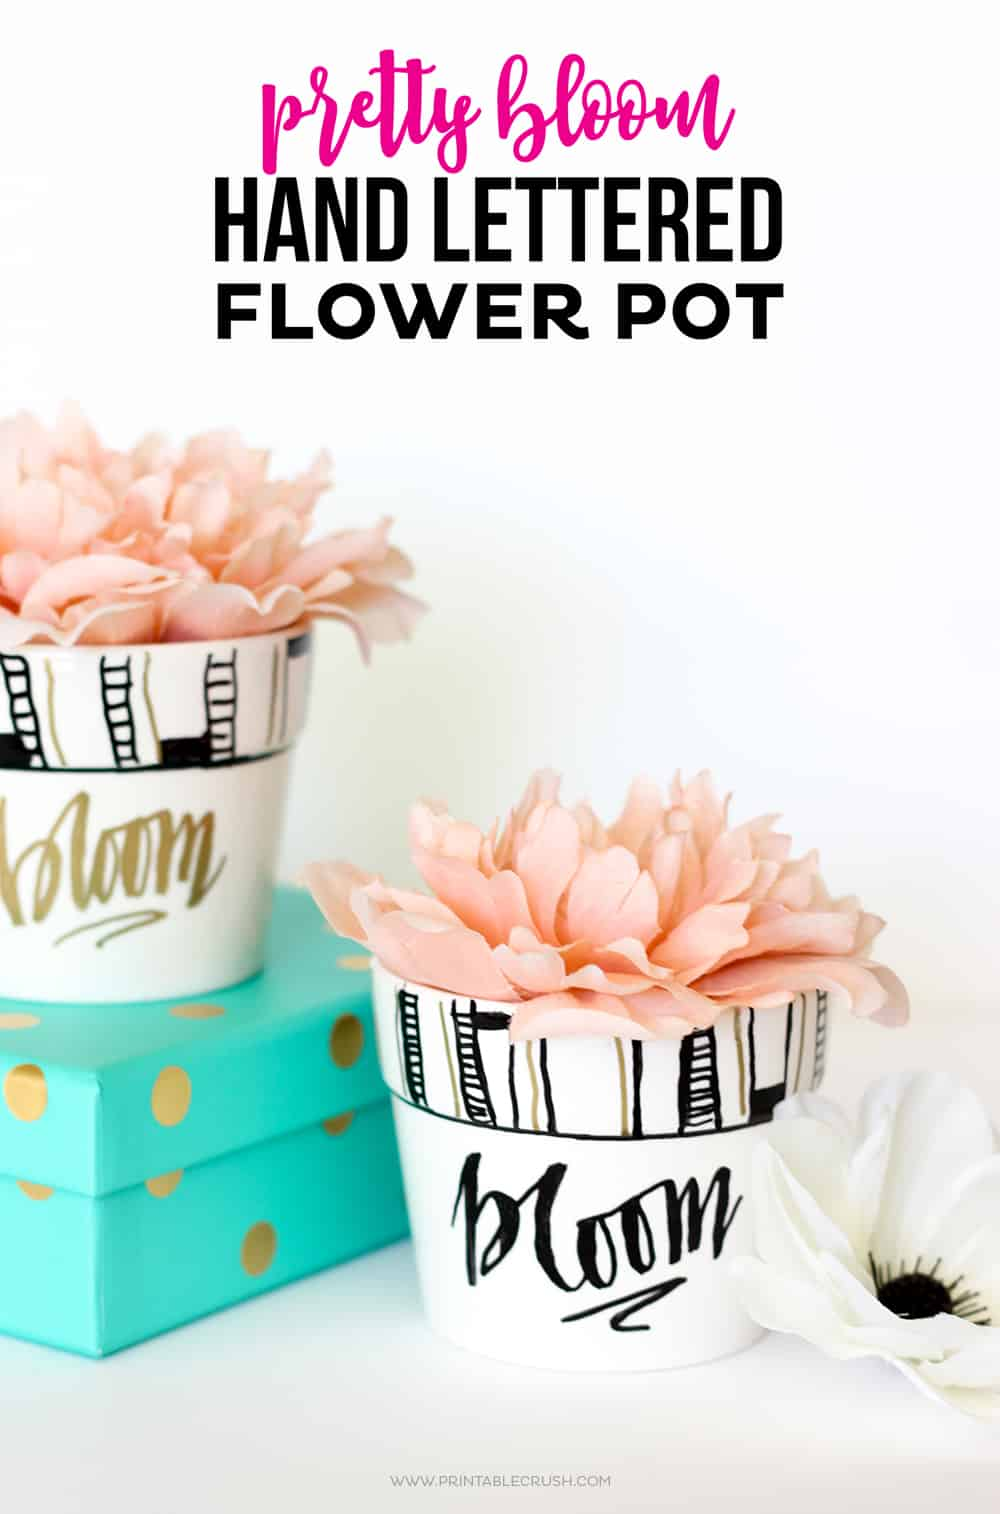 A cute sharpie craft to decorate your plain flower pots with some hand lettering and patterns.